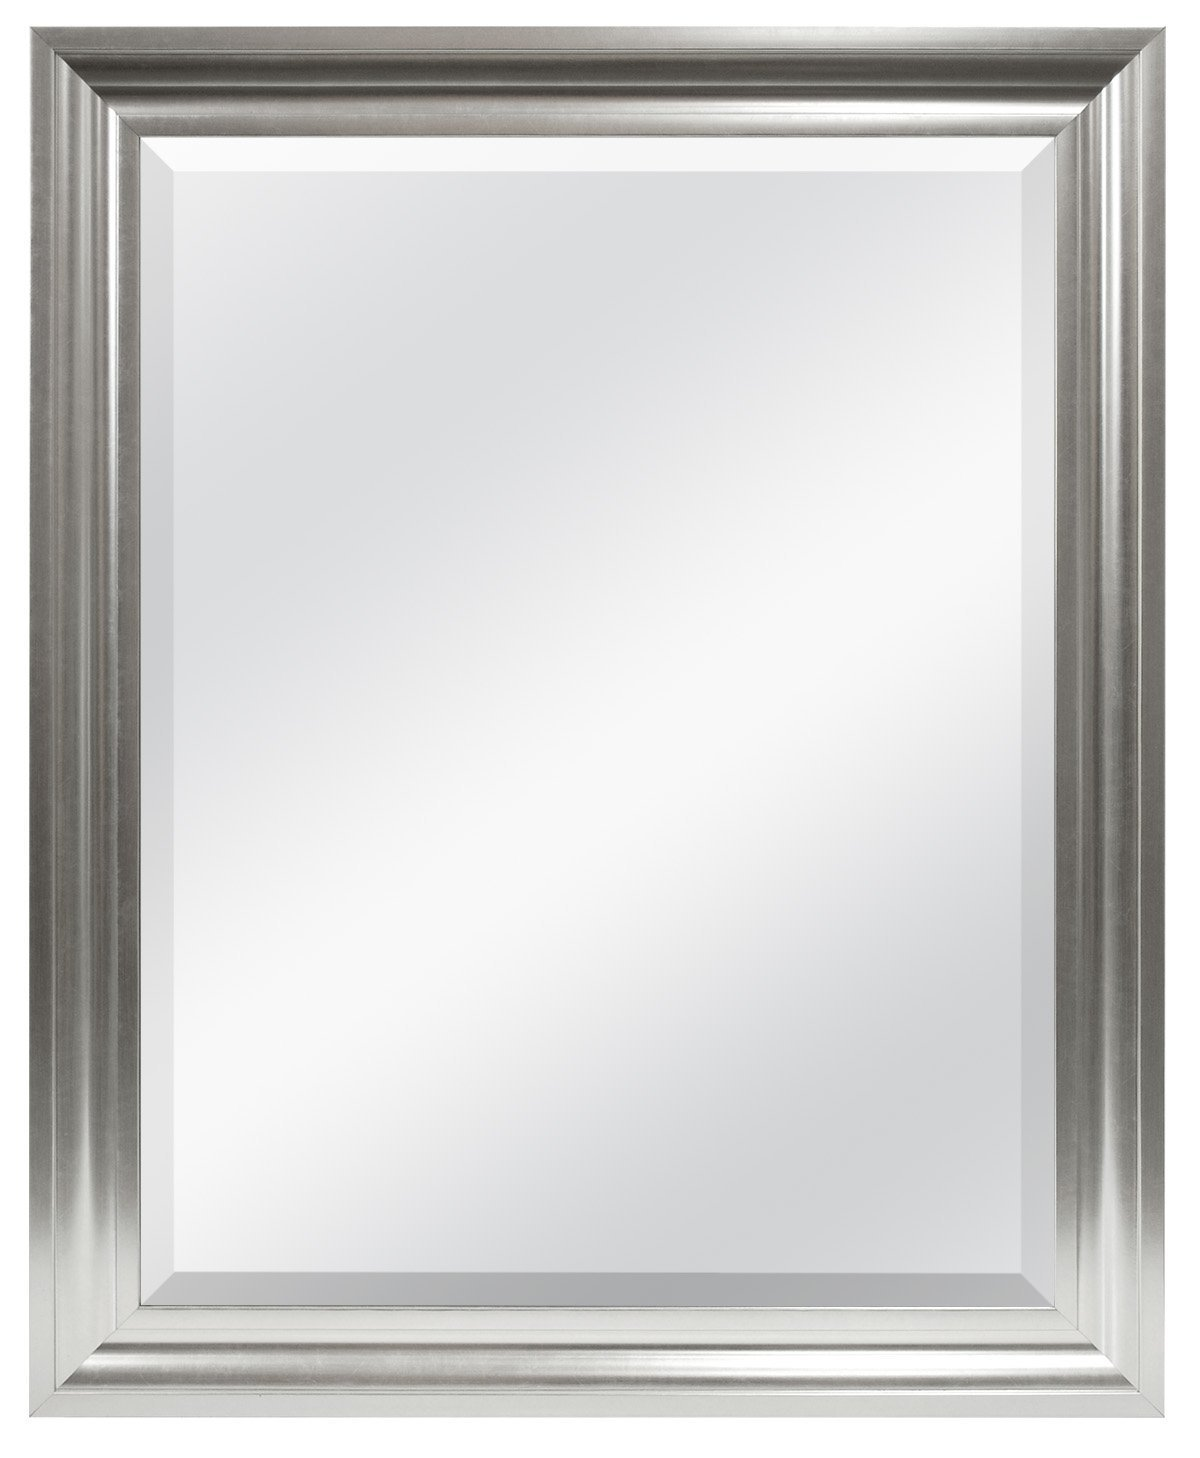 MCS 20675 21.75 by 27.5-Inch Beveled Mirror with 26.5 by 32.5-Inch Frame, Satin Silver